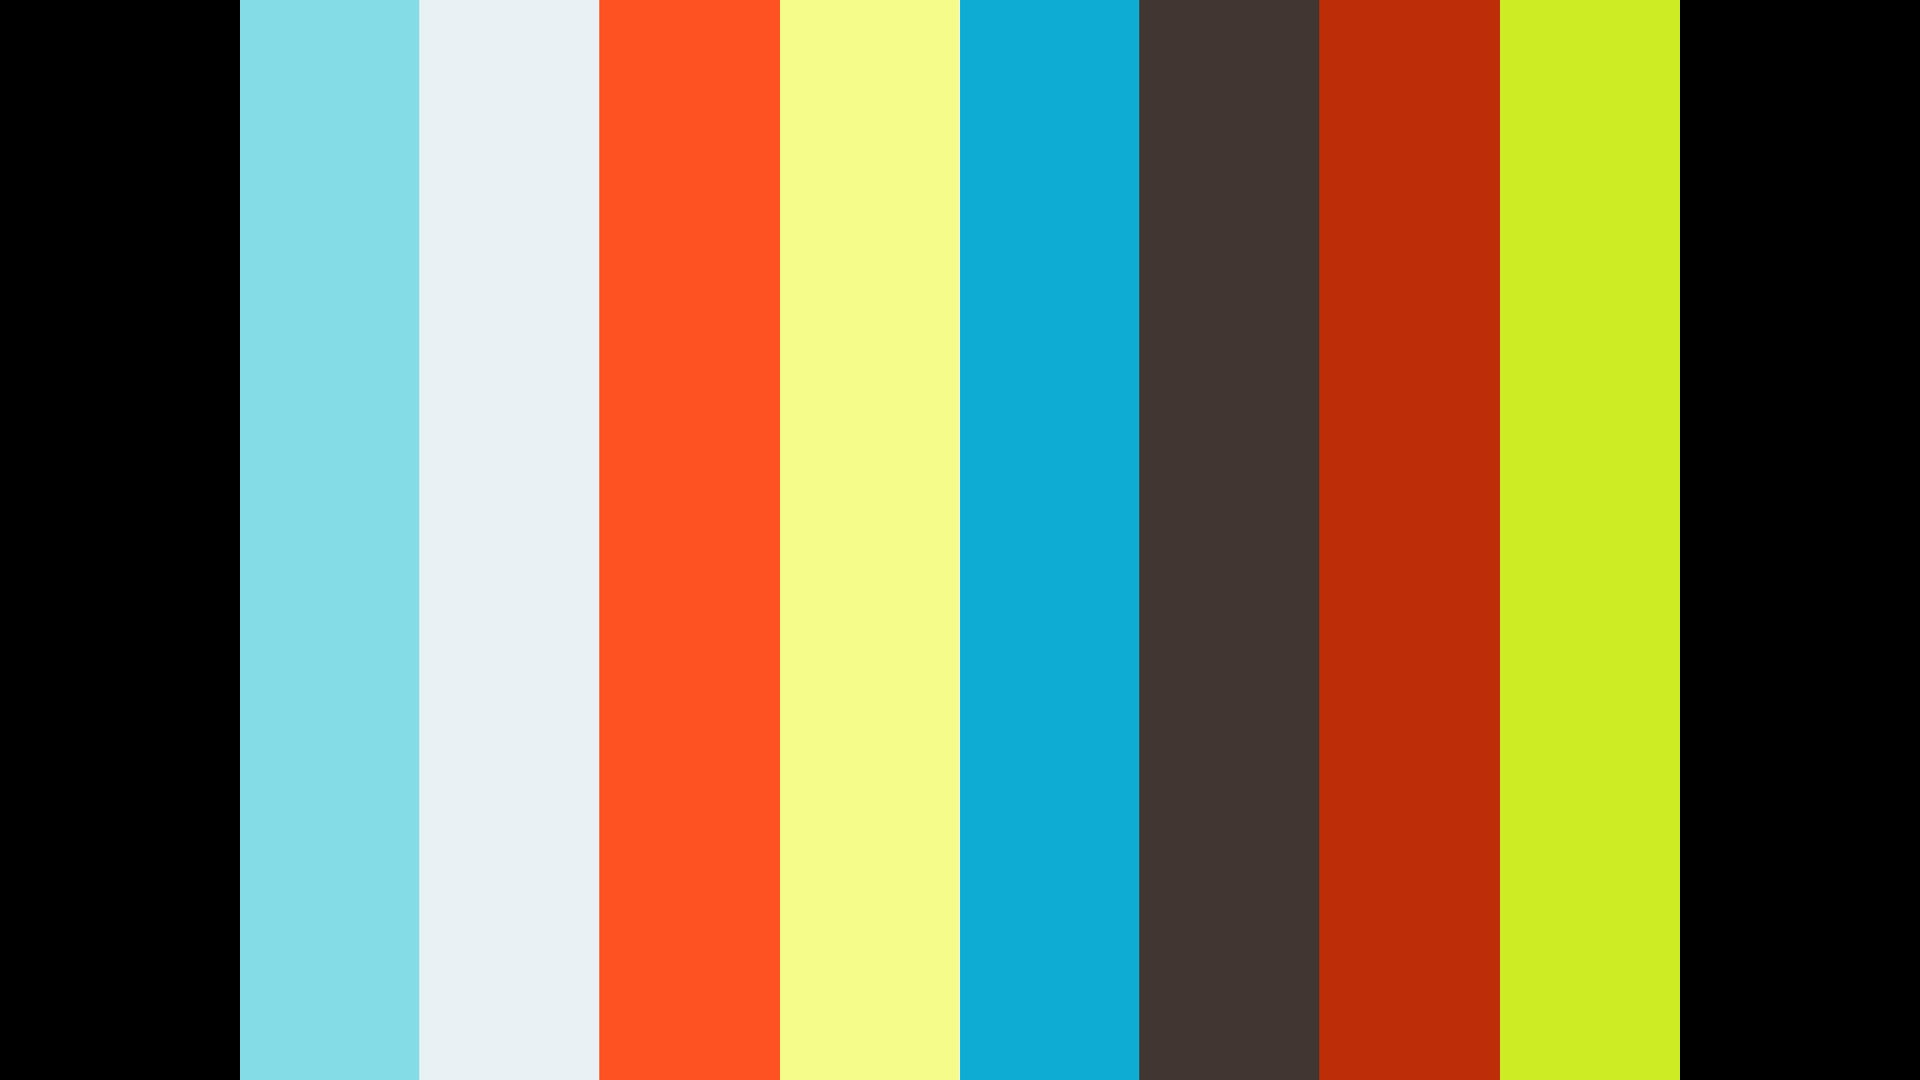 Joffrey Summer of Hip Hop - 1 Minute Reel